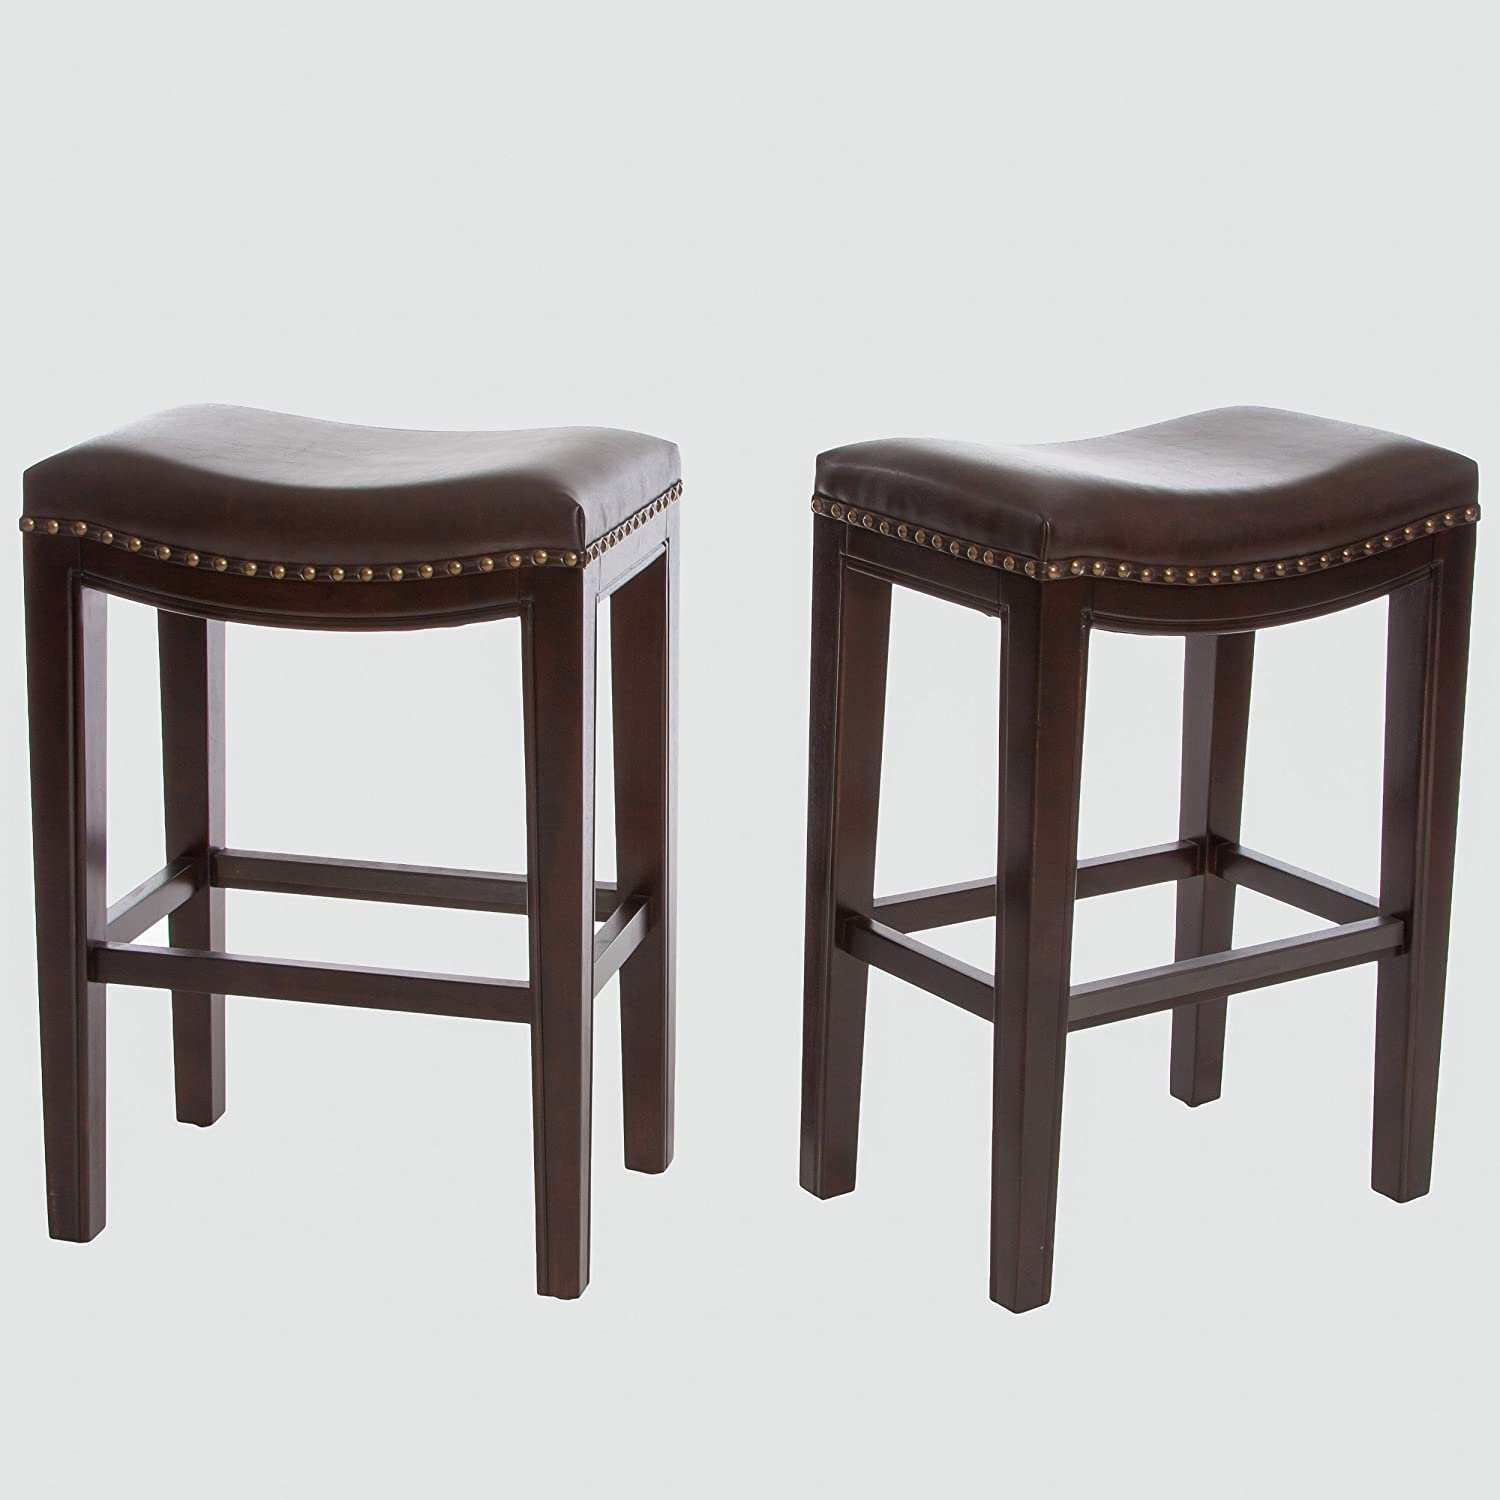 Best Selling Aster Backless Counter Stools, Brown, Set of 2